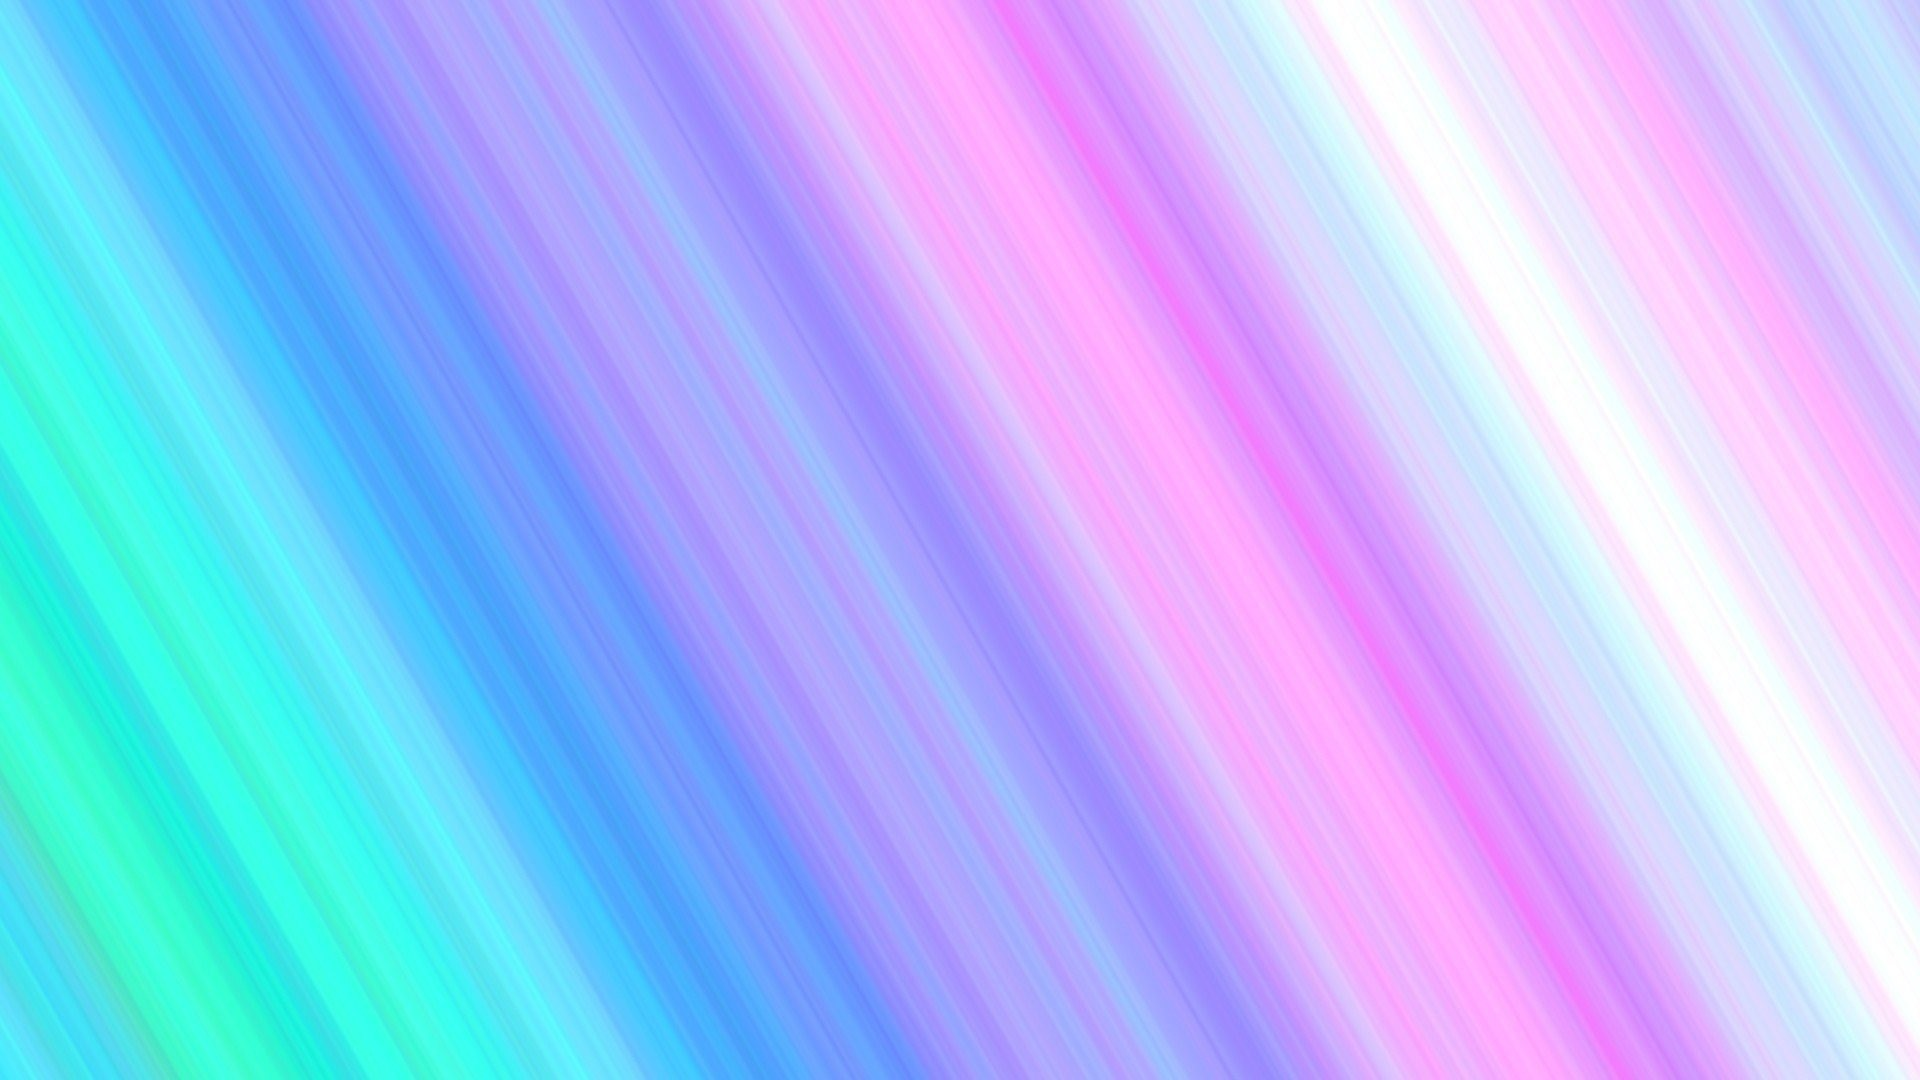 Pink And Blue Wallpaper (81+ Images